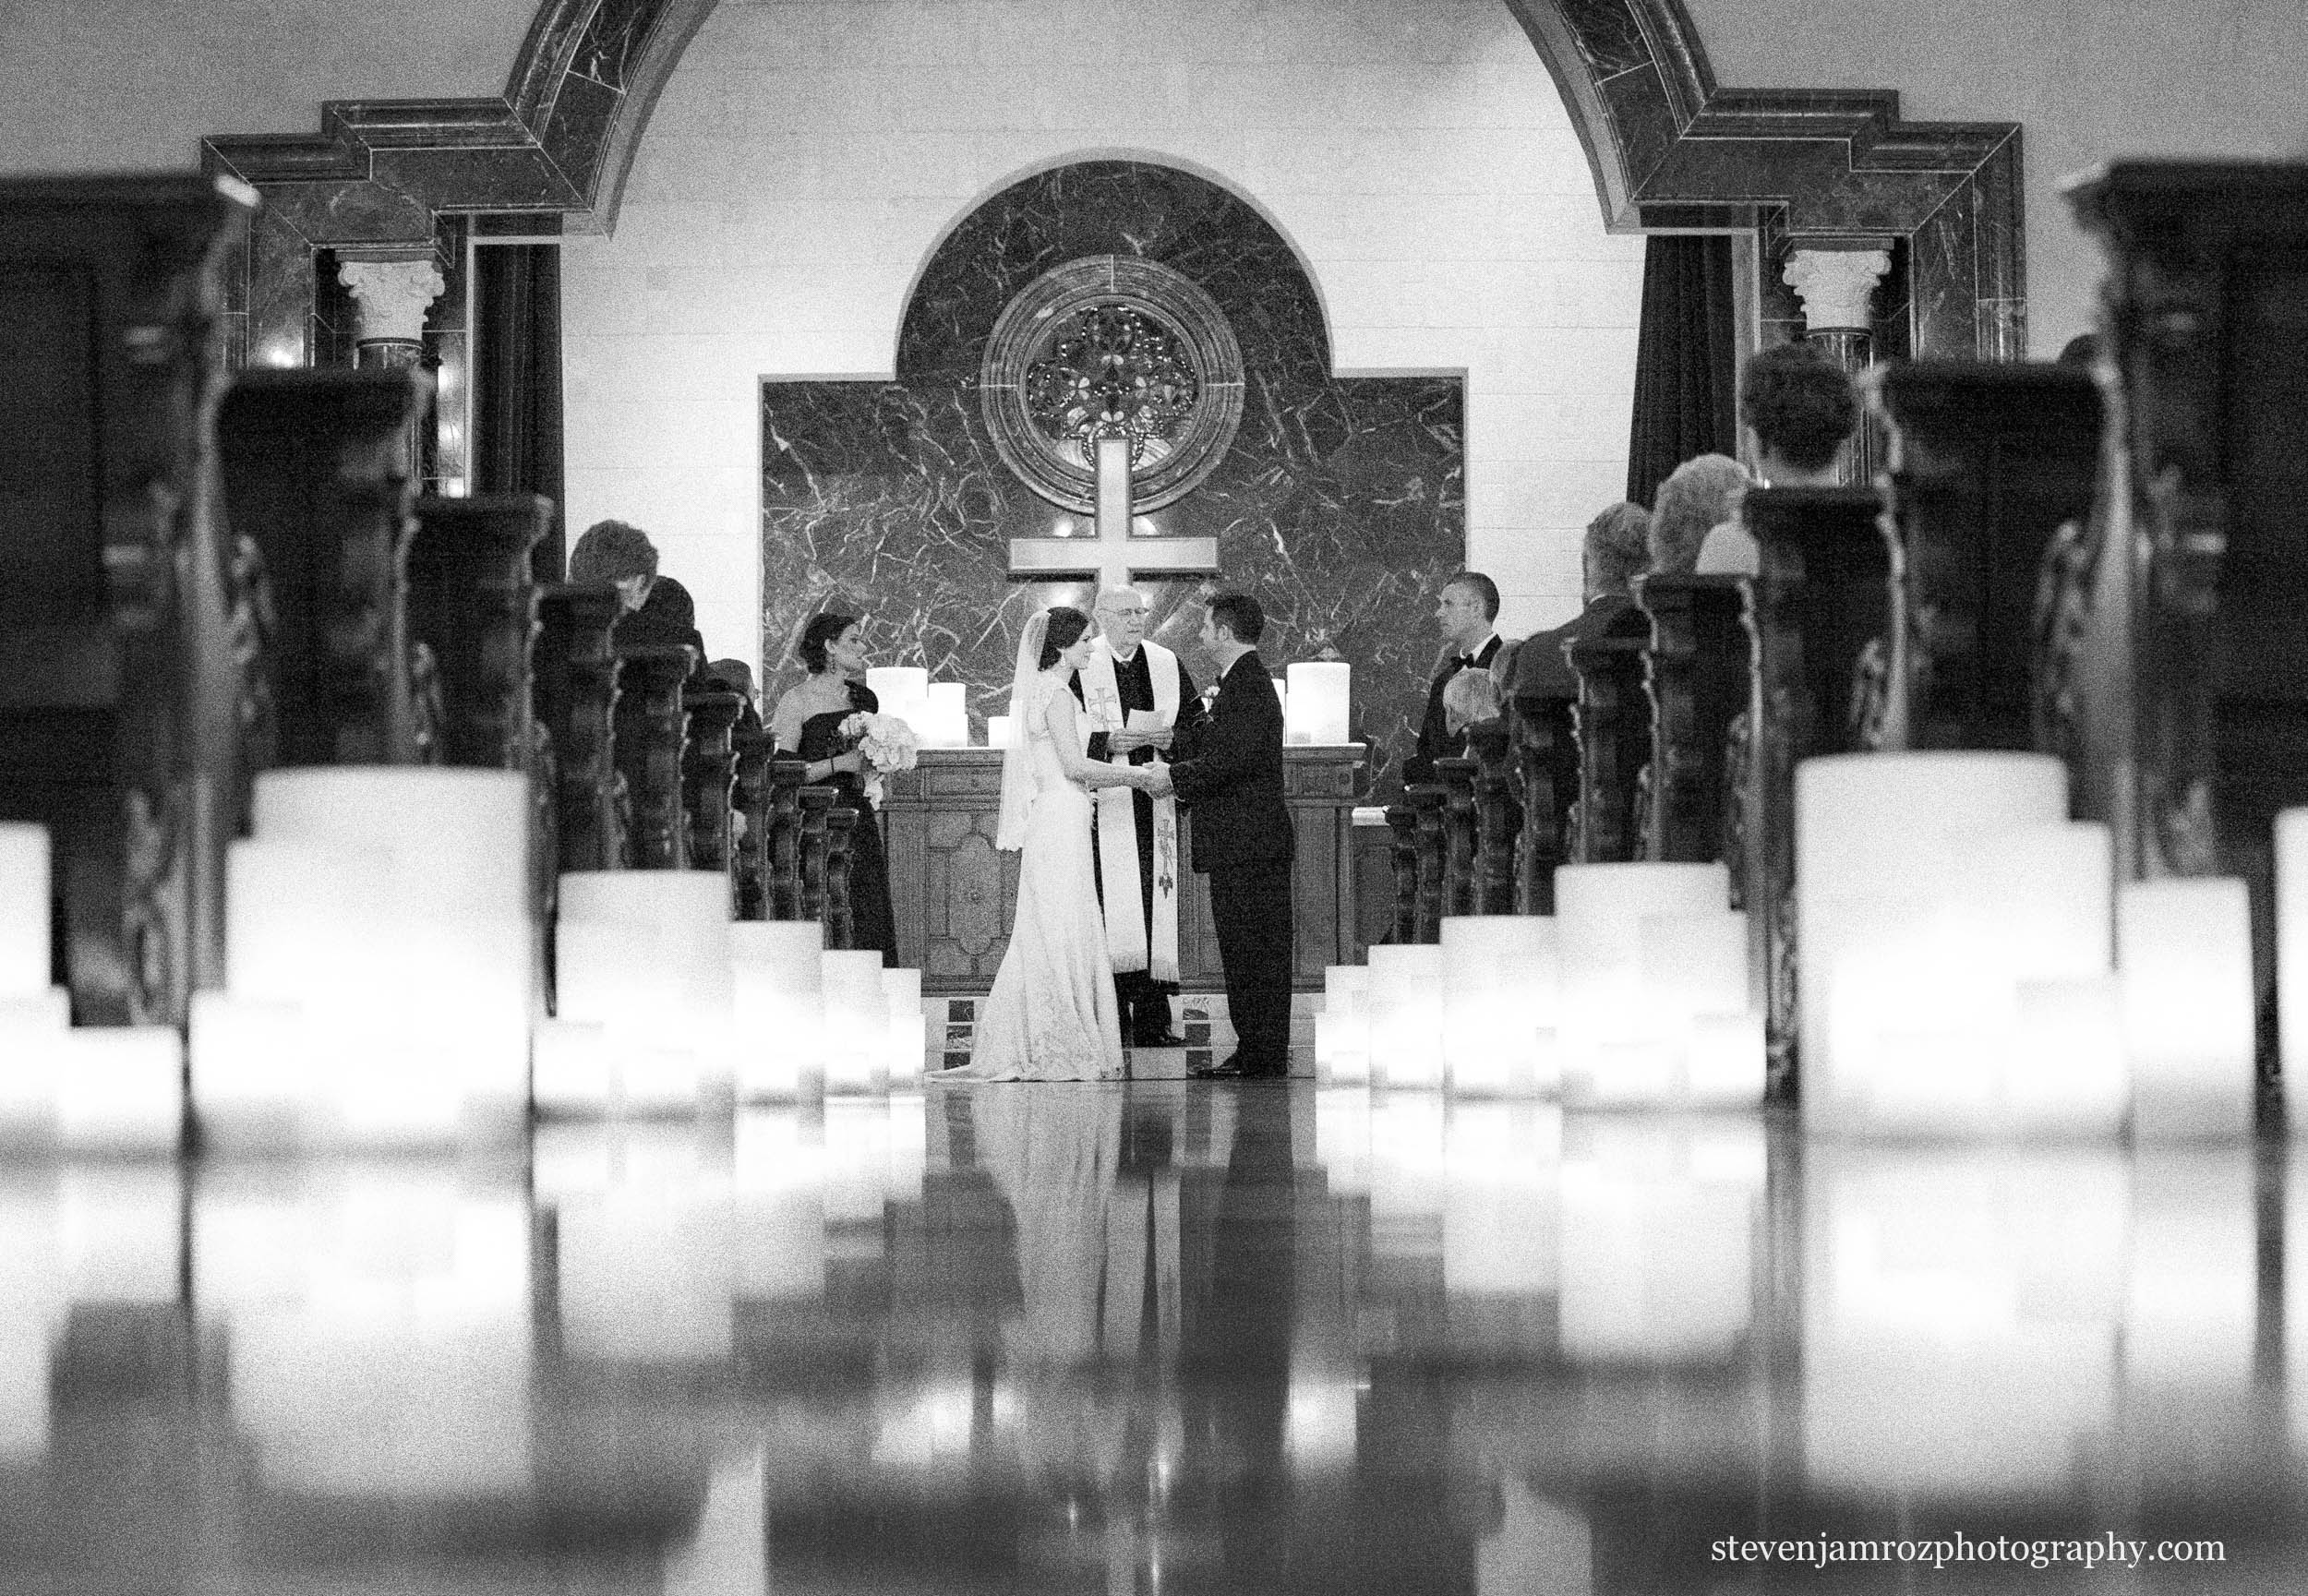 church-wedding-reflection-off-floor-photography-0809.jpg